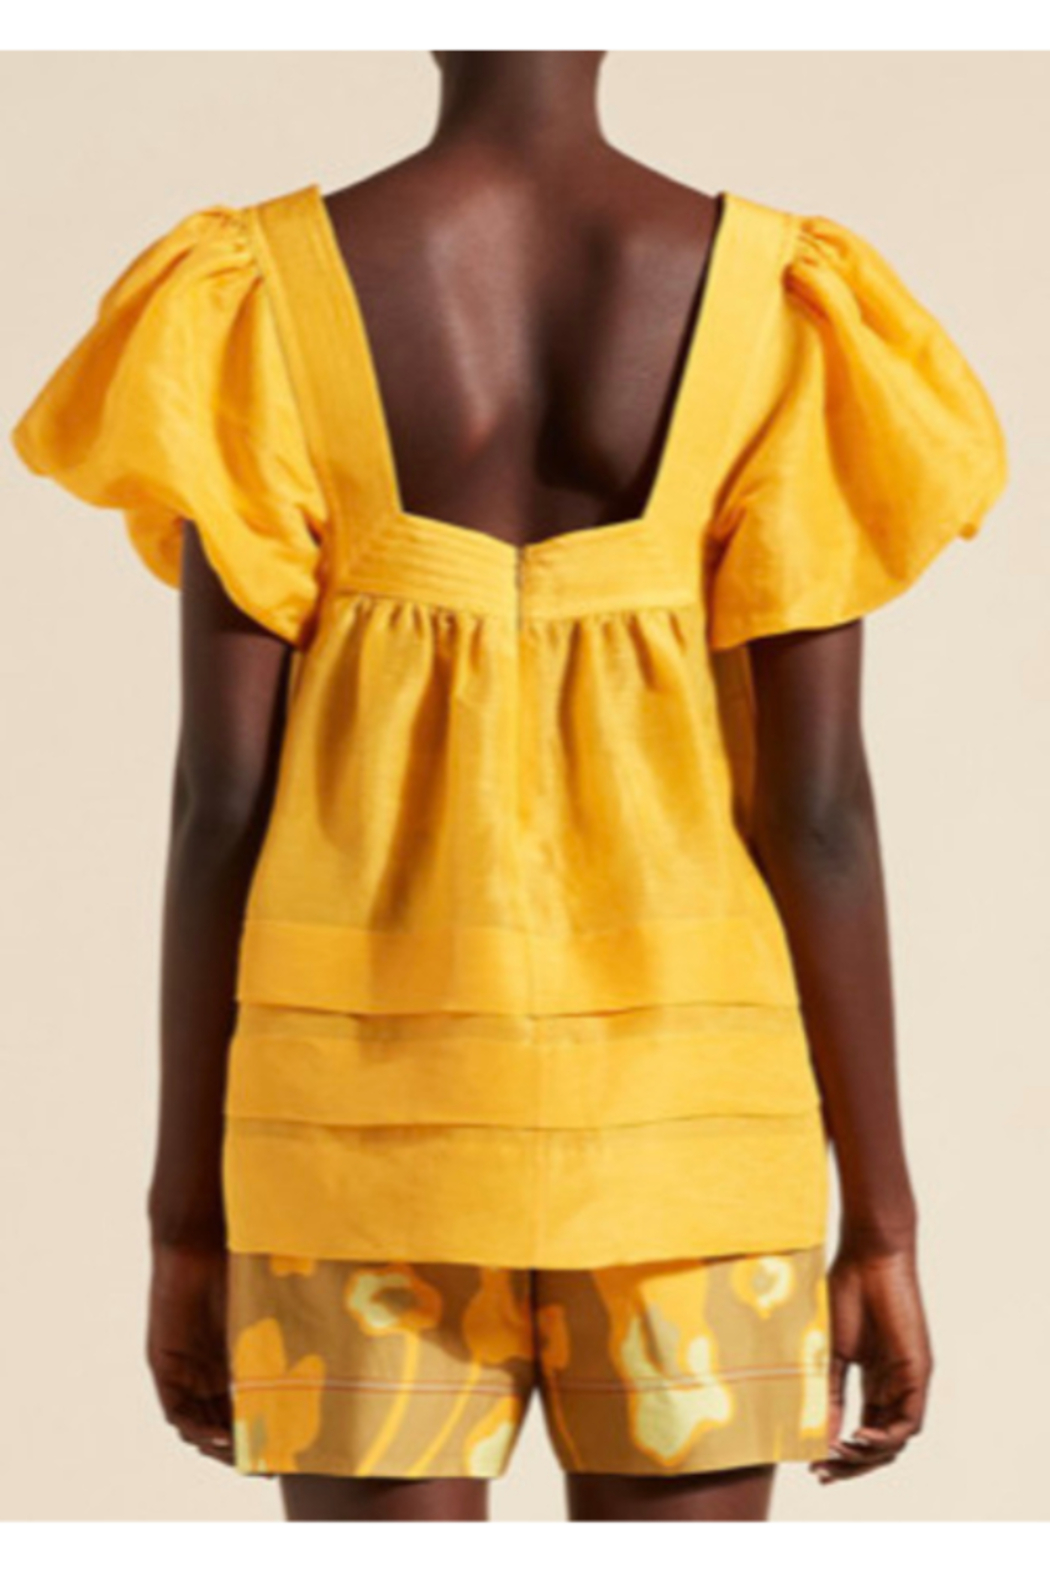 Lee Mathews TUCKED PUFF TOP - Side Cropped Image